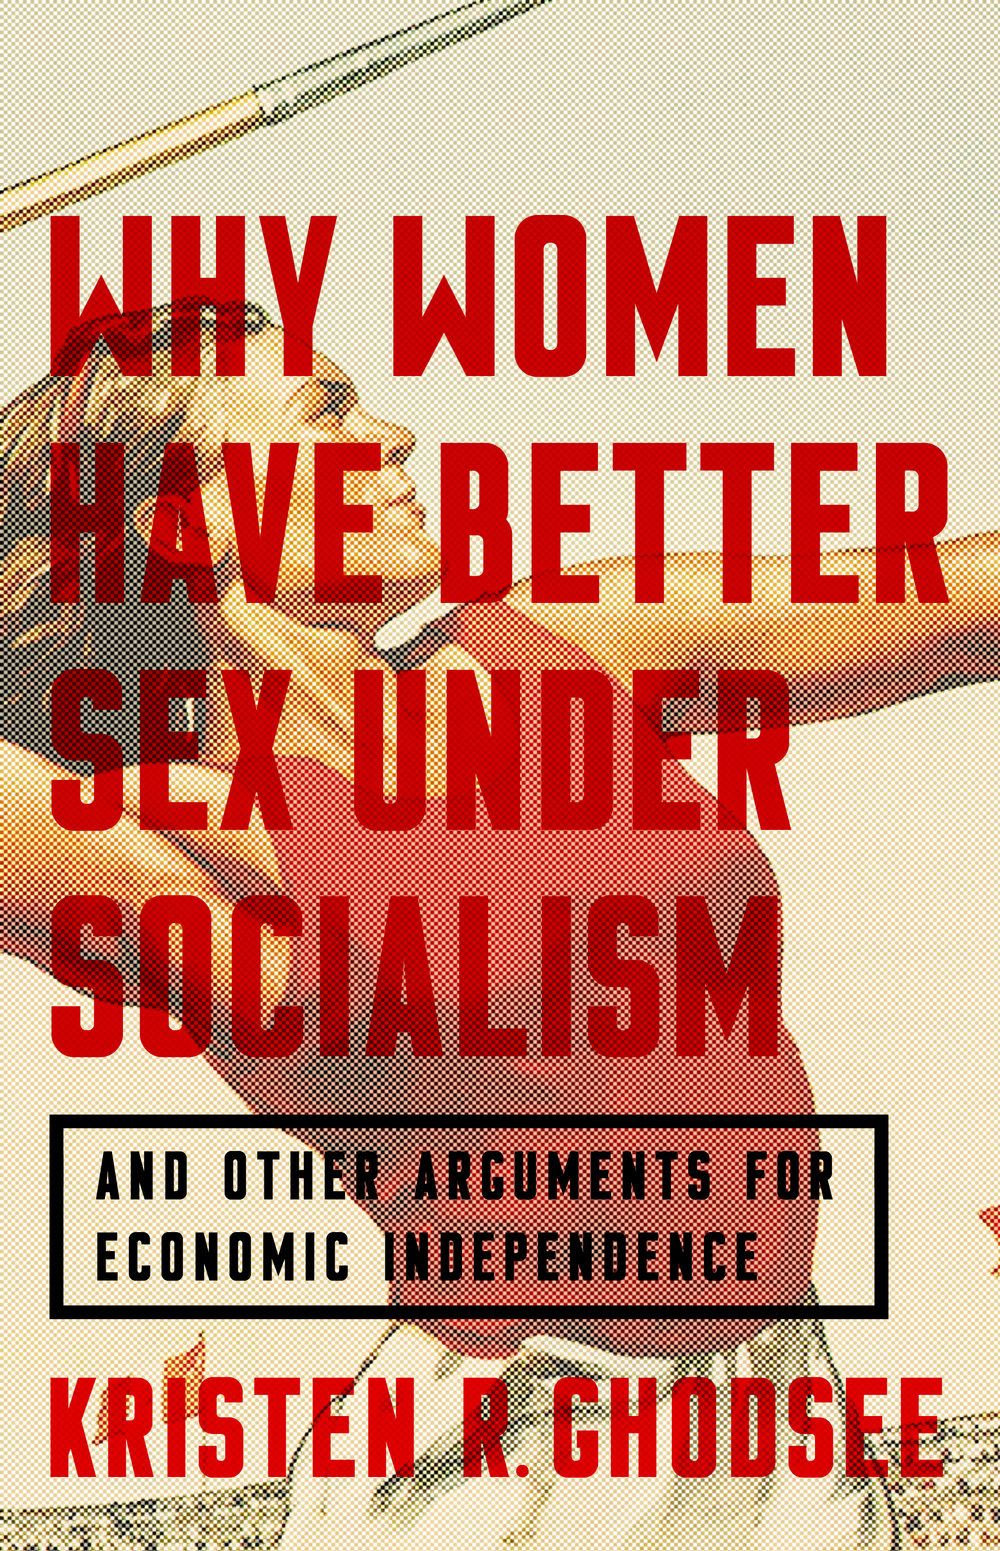 Why Women Have Better Sex Under Socialism: And Other Arguments for Economic Independence - From Nation Books, 2018Reviews